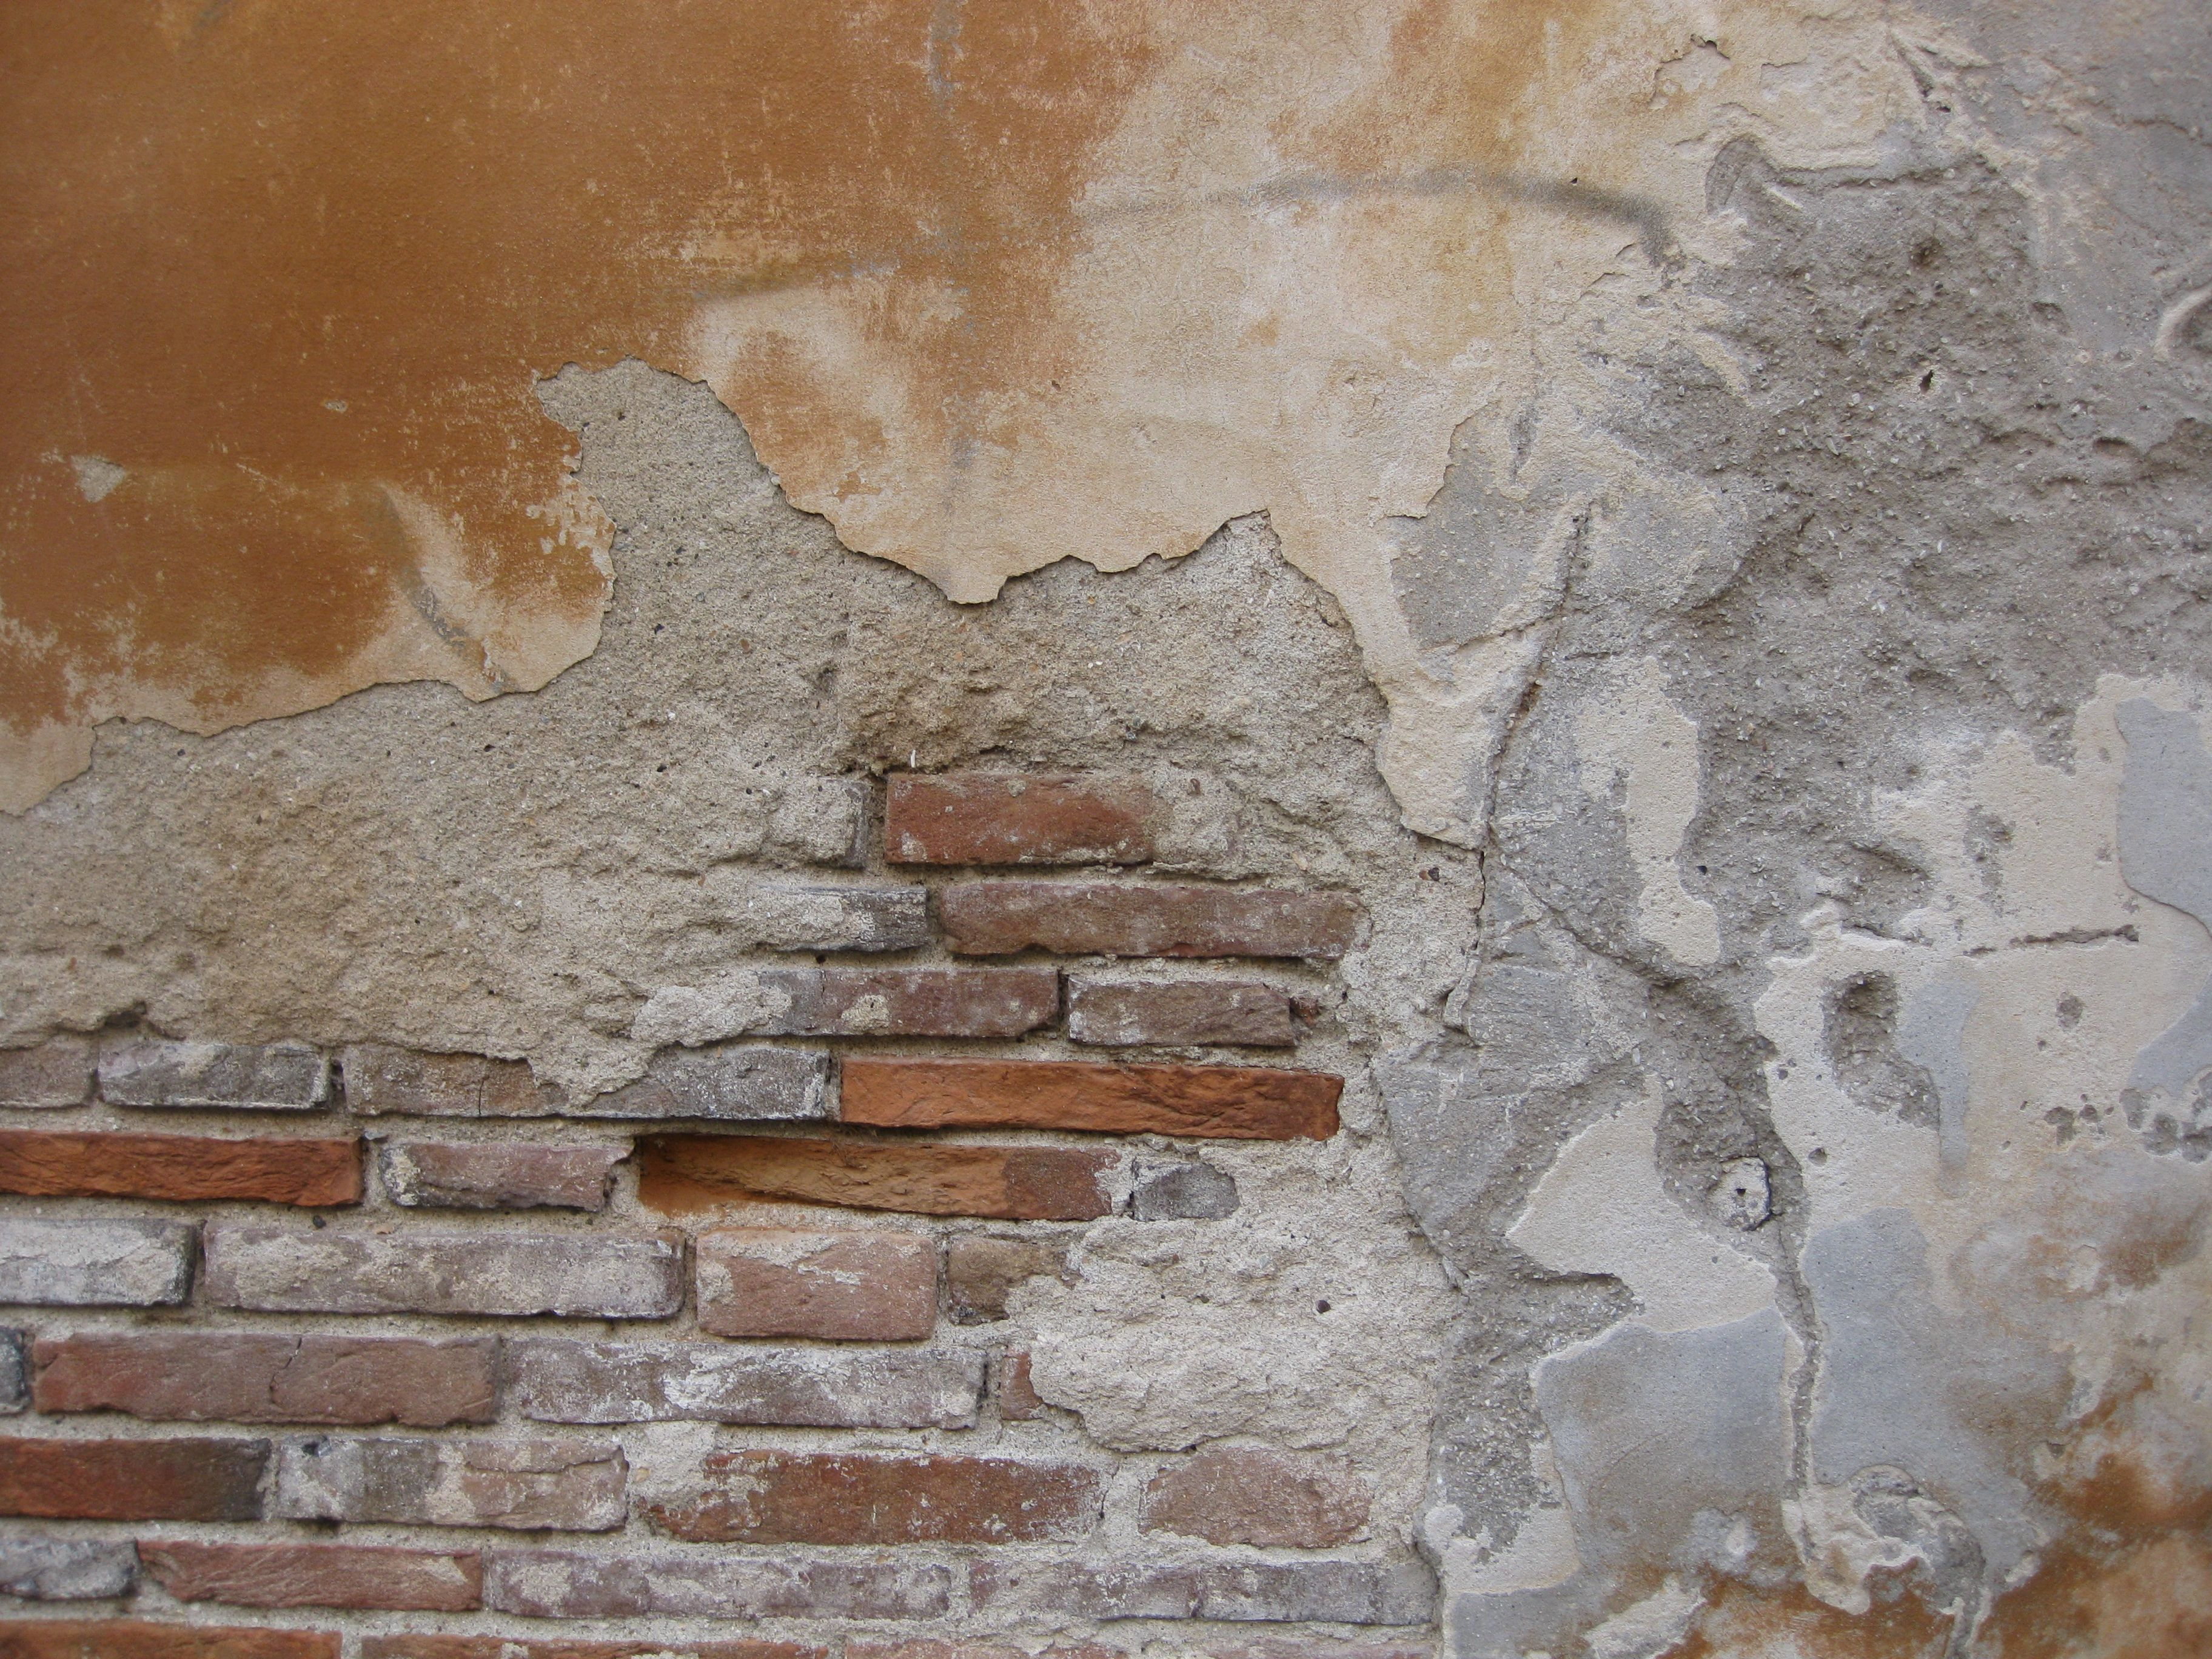 Anytime There Is A Freeze And Thaw Pattern Homeowners May Notice Cracks Developing In Their Basemen With Images Brick Waterproofing Basement Walls Concrete Basement Walls